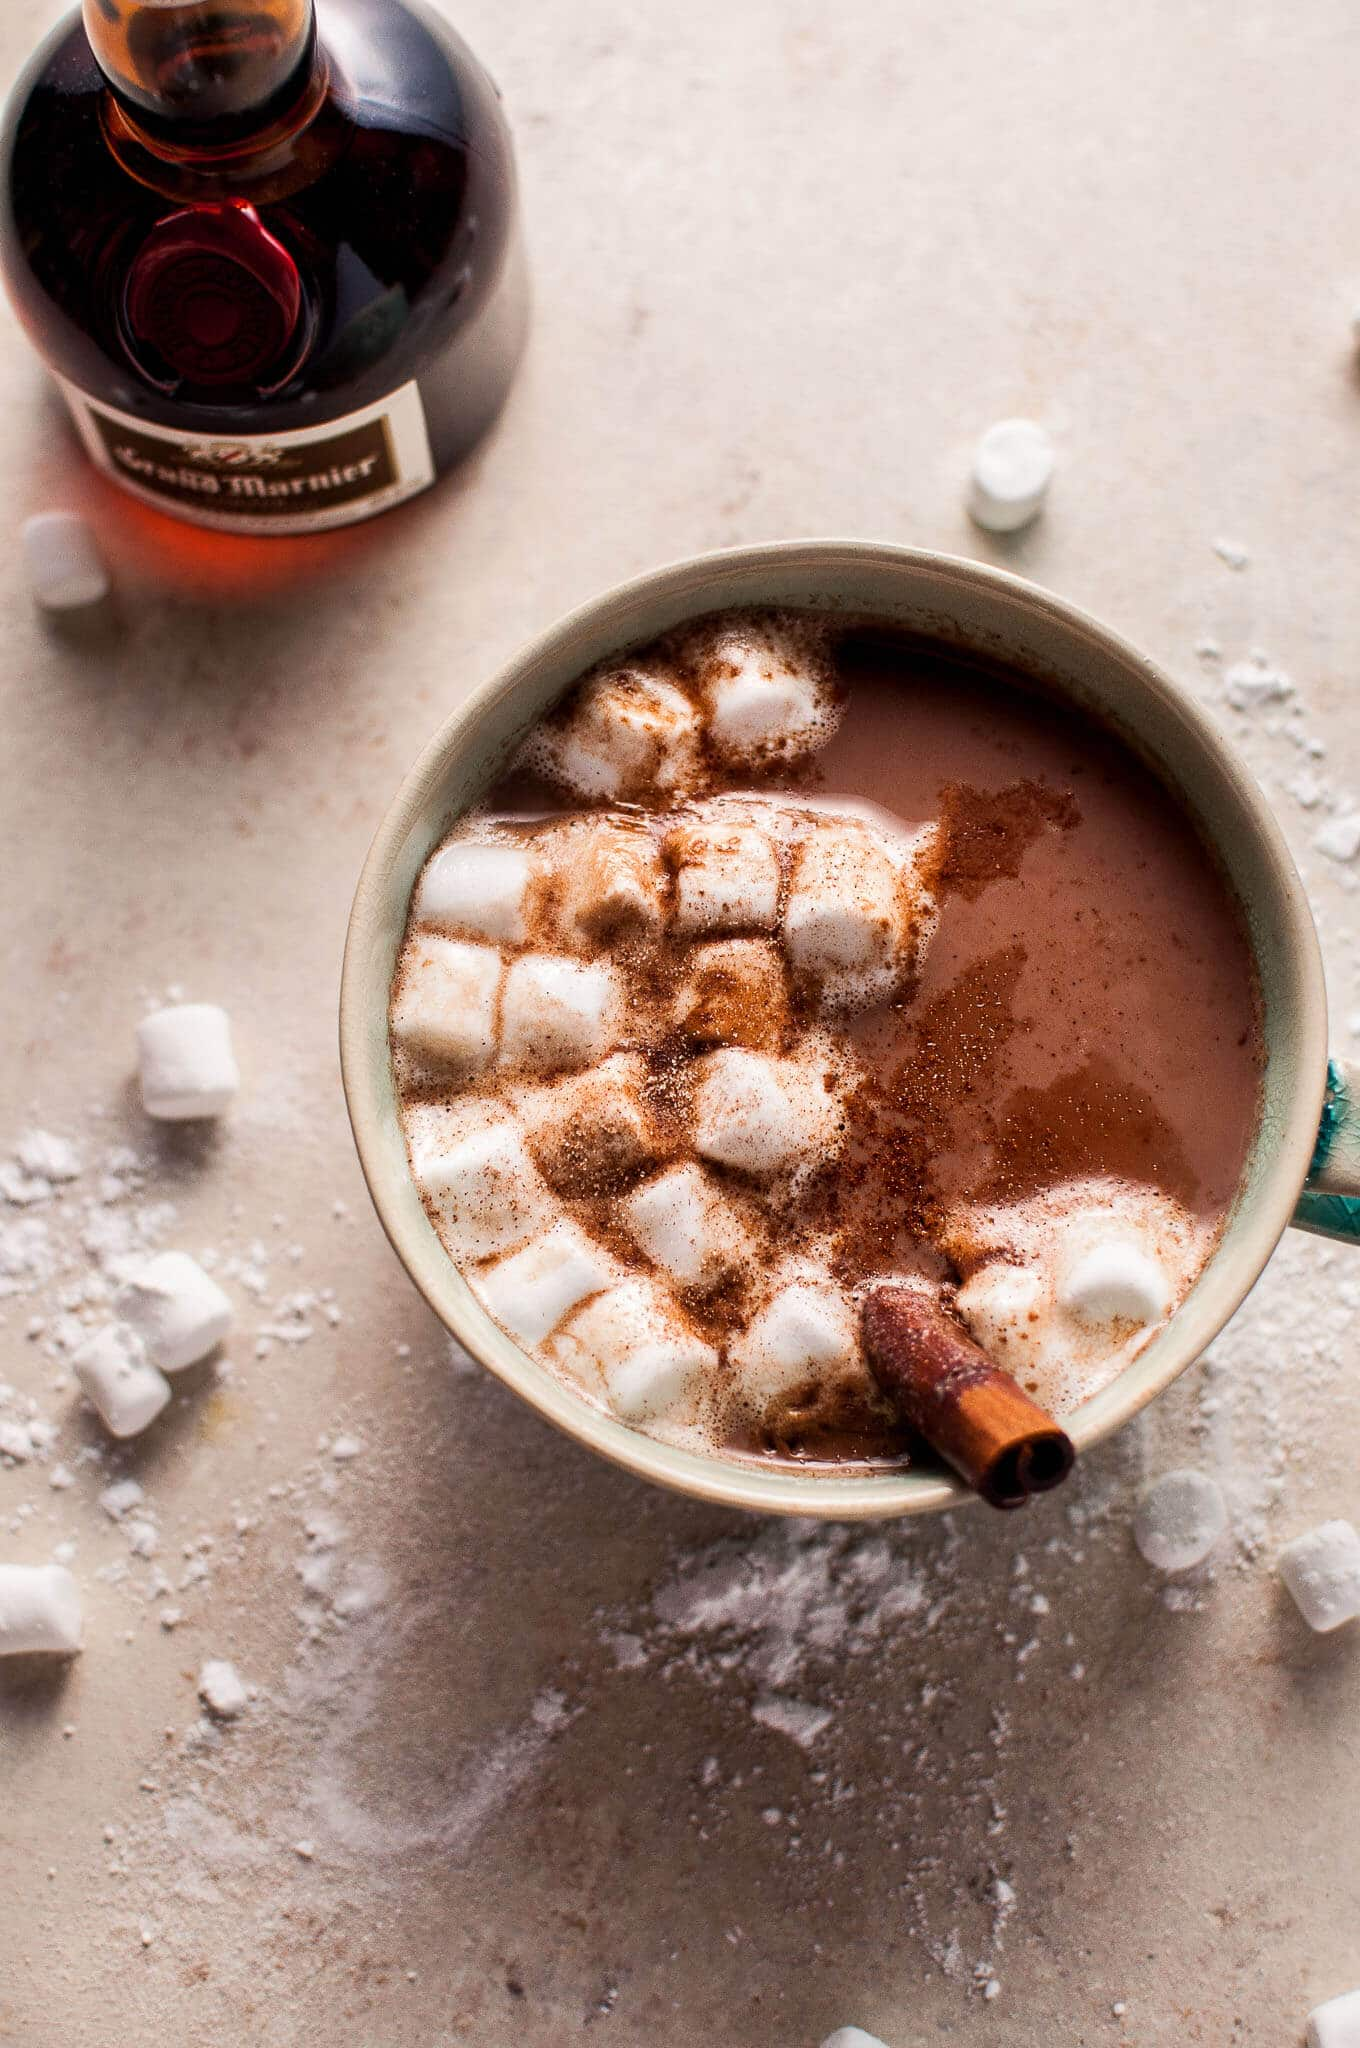 This orange spiked boozy hot chocolate is a grown-up way to enjoy the comforting winter beverage.